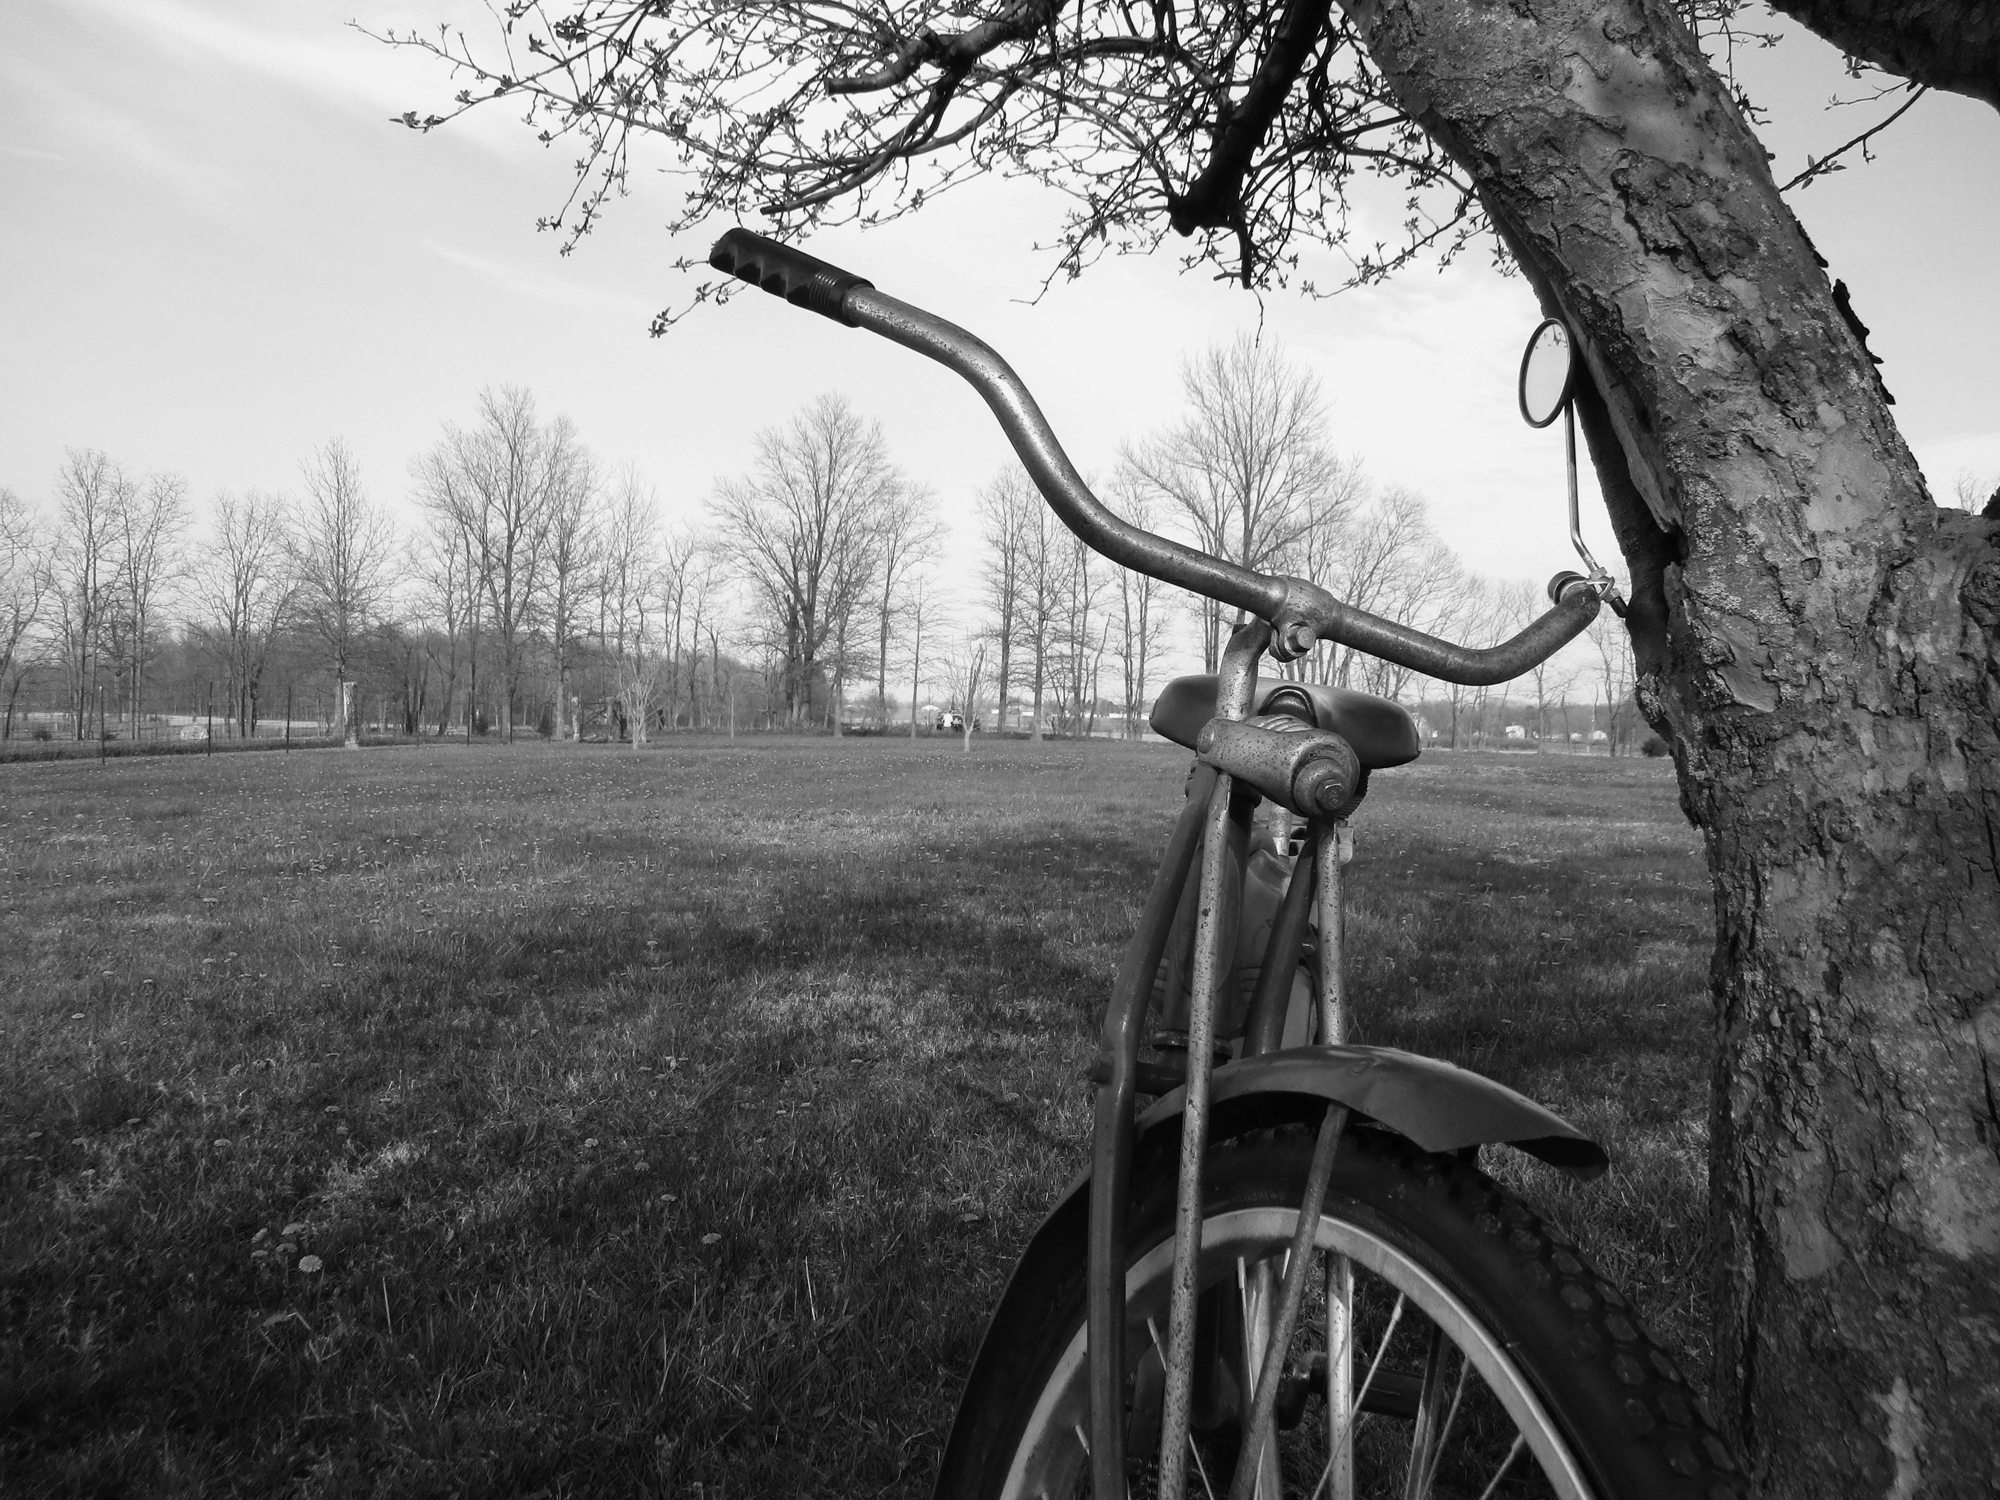 Classic Bicycle on a sunny day